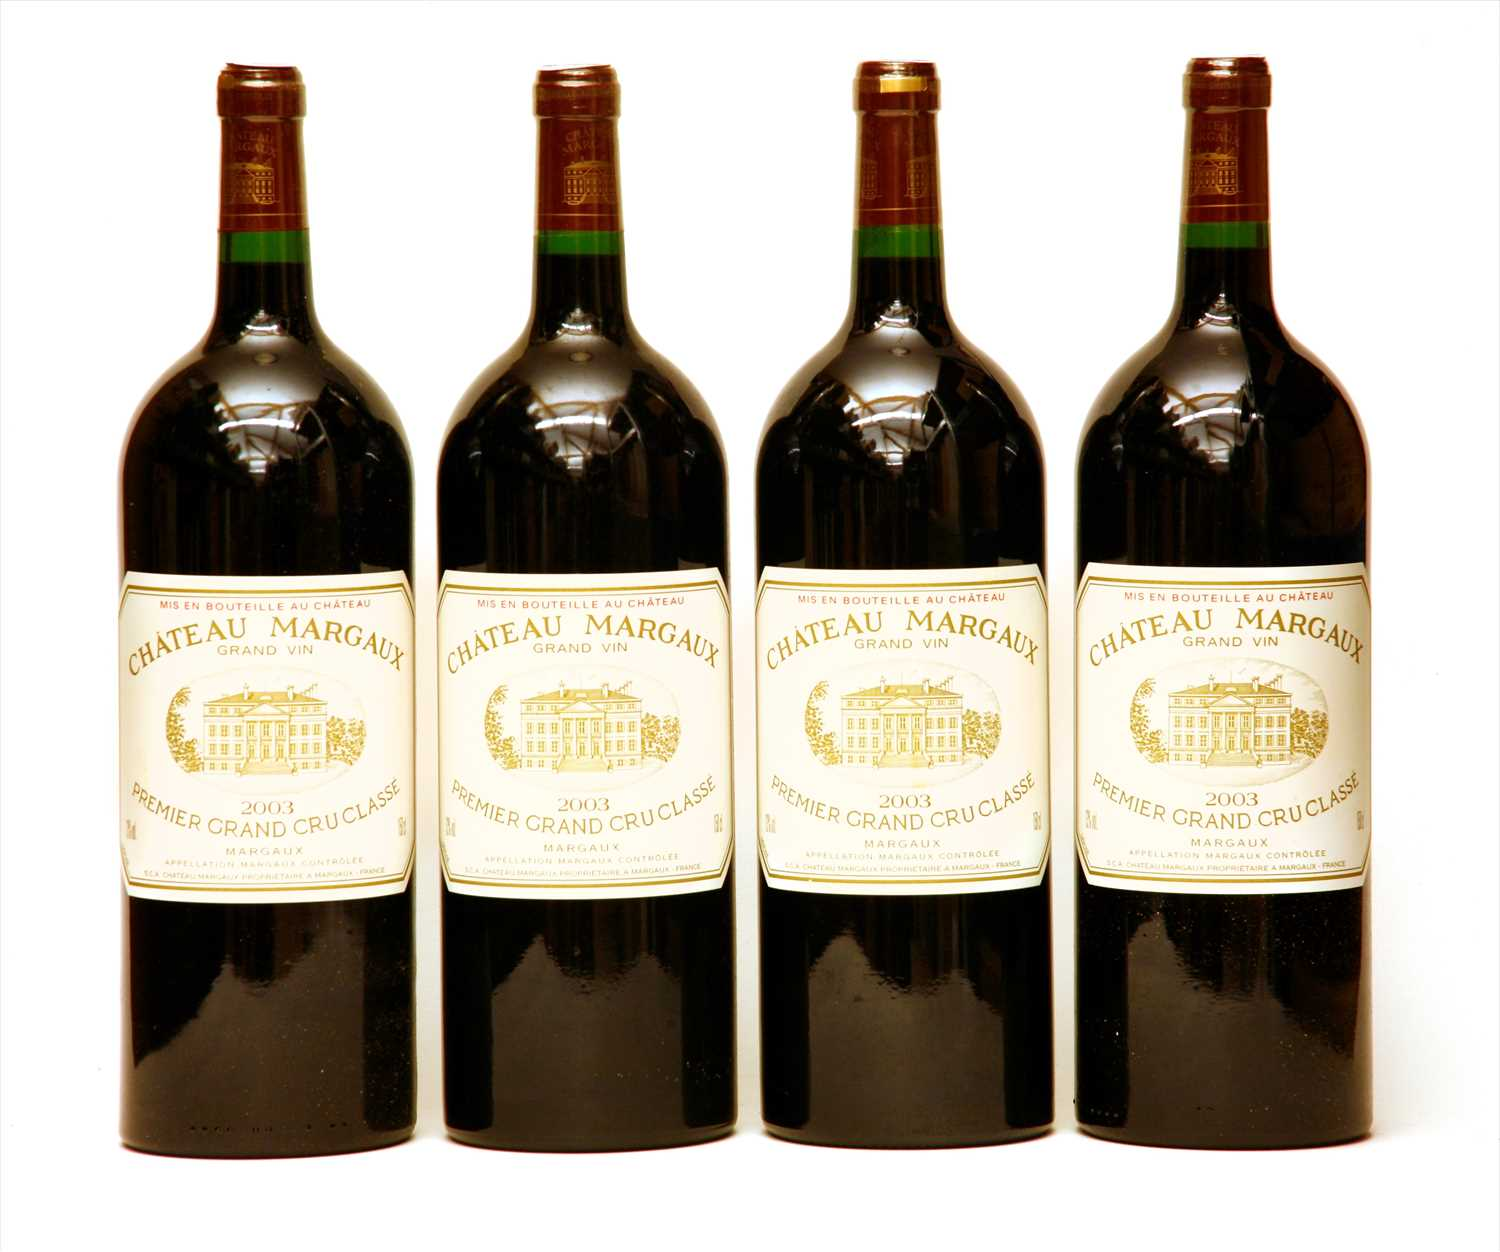 Lot 345-Château Margaux, Margaux, 1st growth, 2003, four magnums (in opened owc)